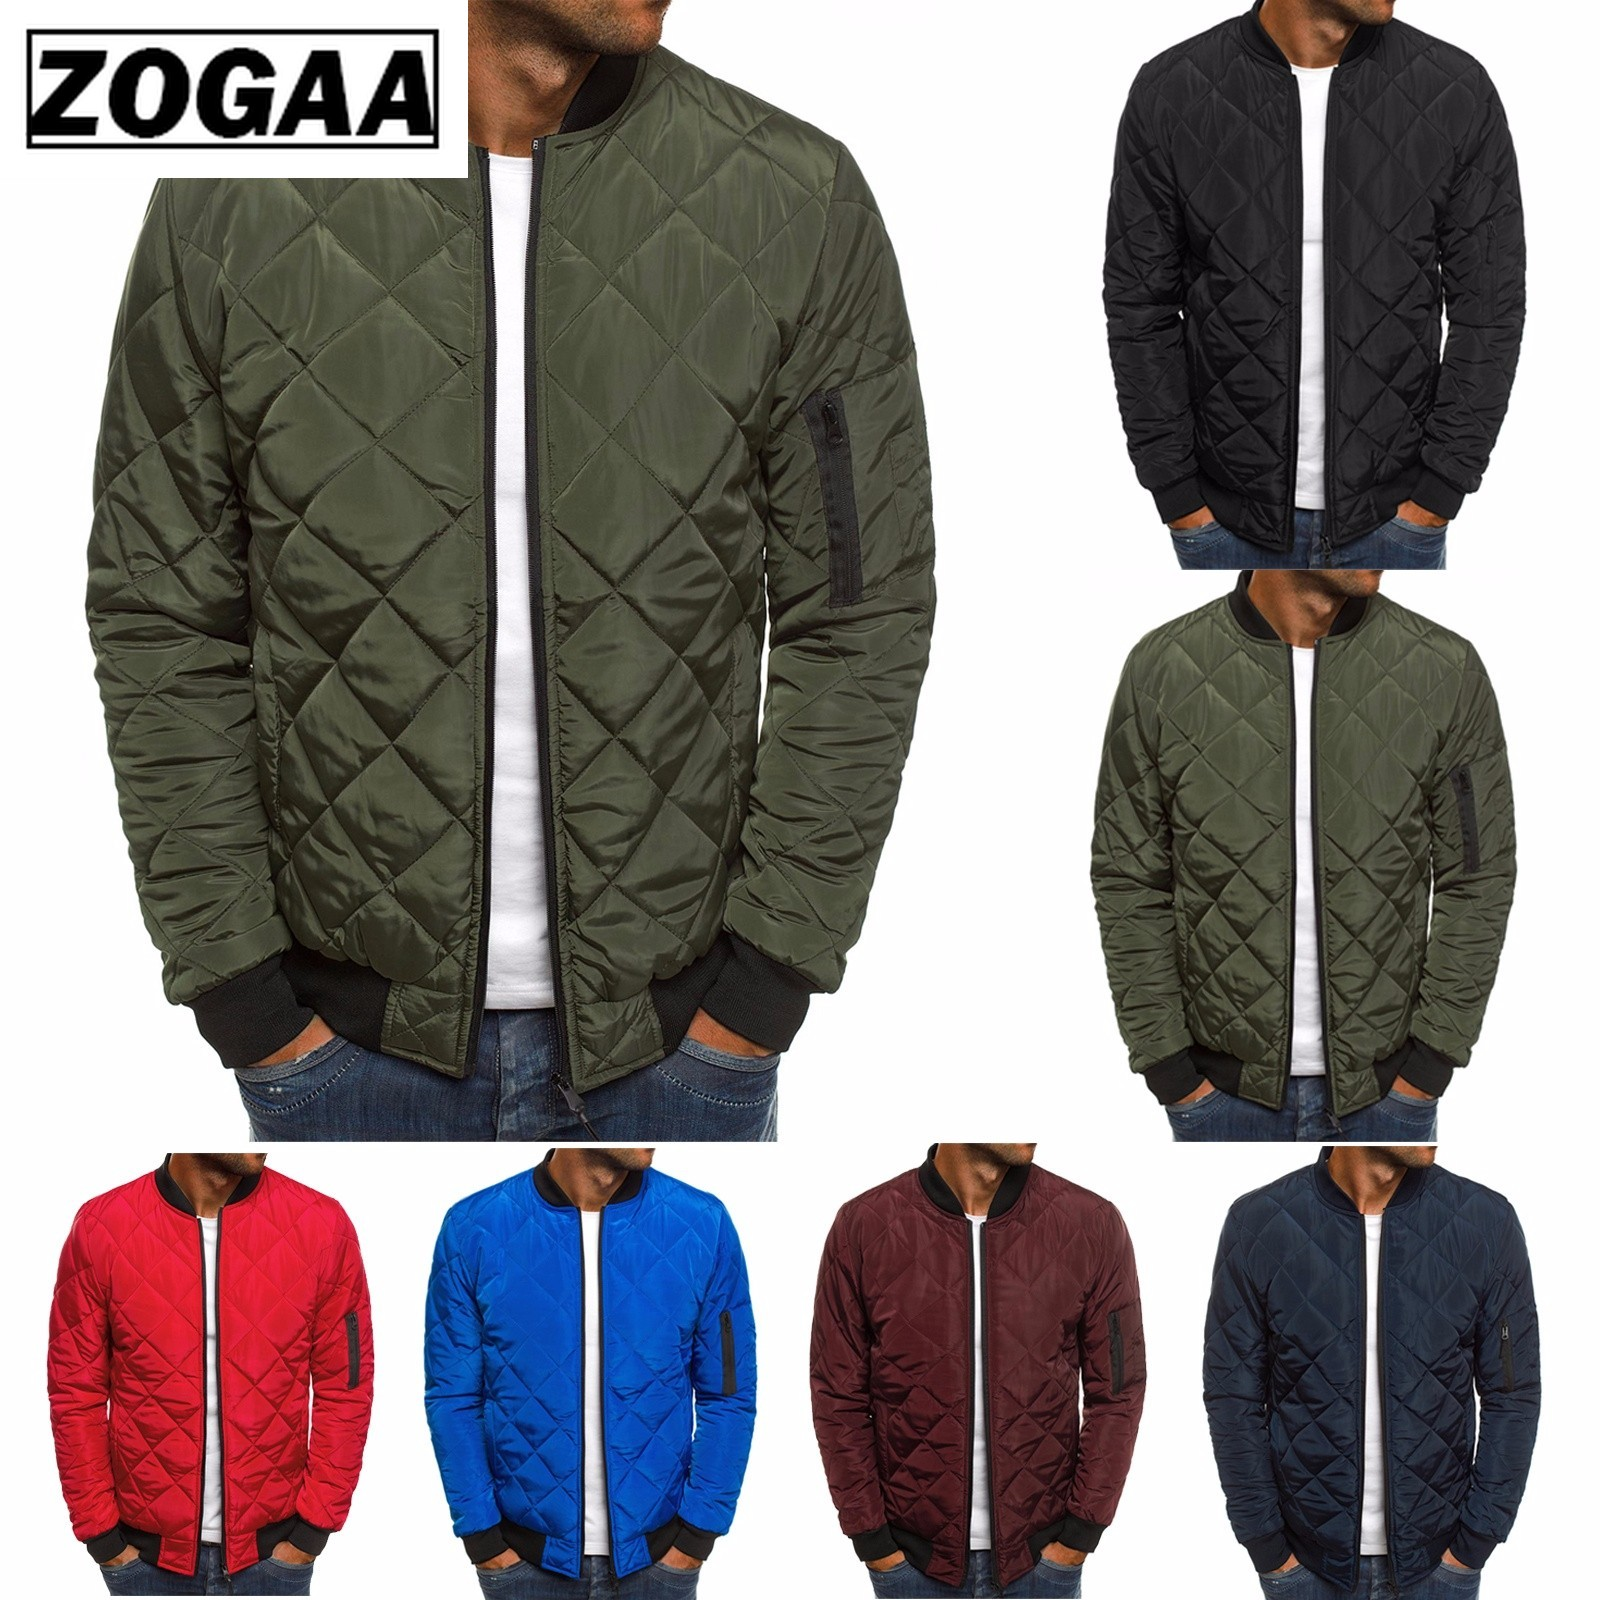 ZOGAA Men Parkas Plaid Jacket Men's Clothes Wind Breaker Solid Parkas Hombre Overcoat Autumn Winter Clothes Zipper Jackets